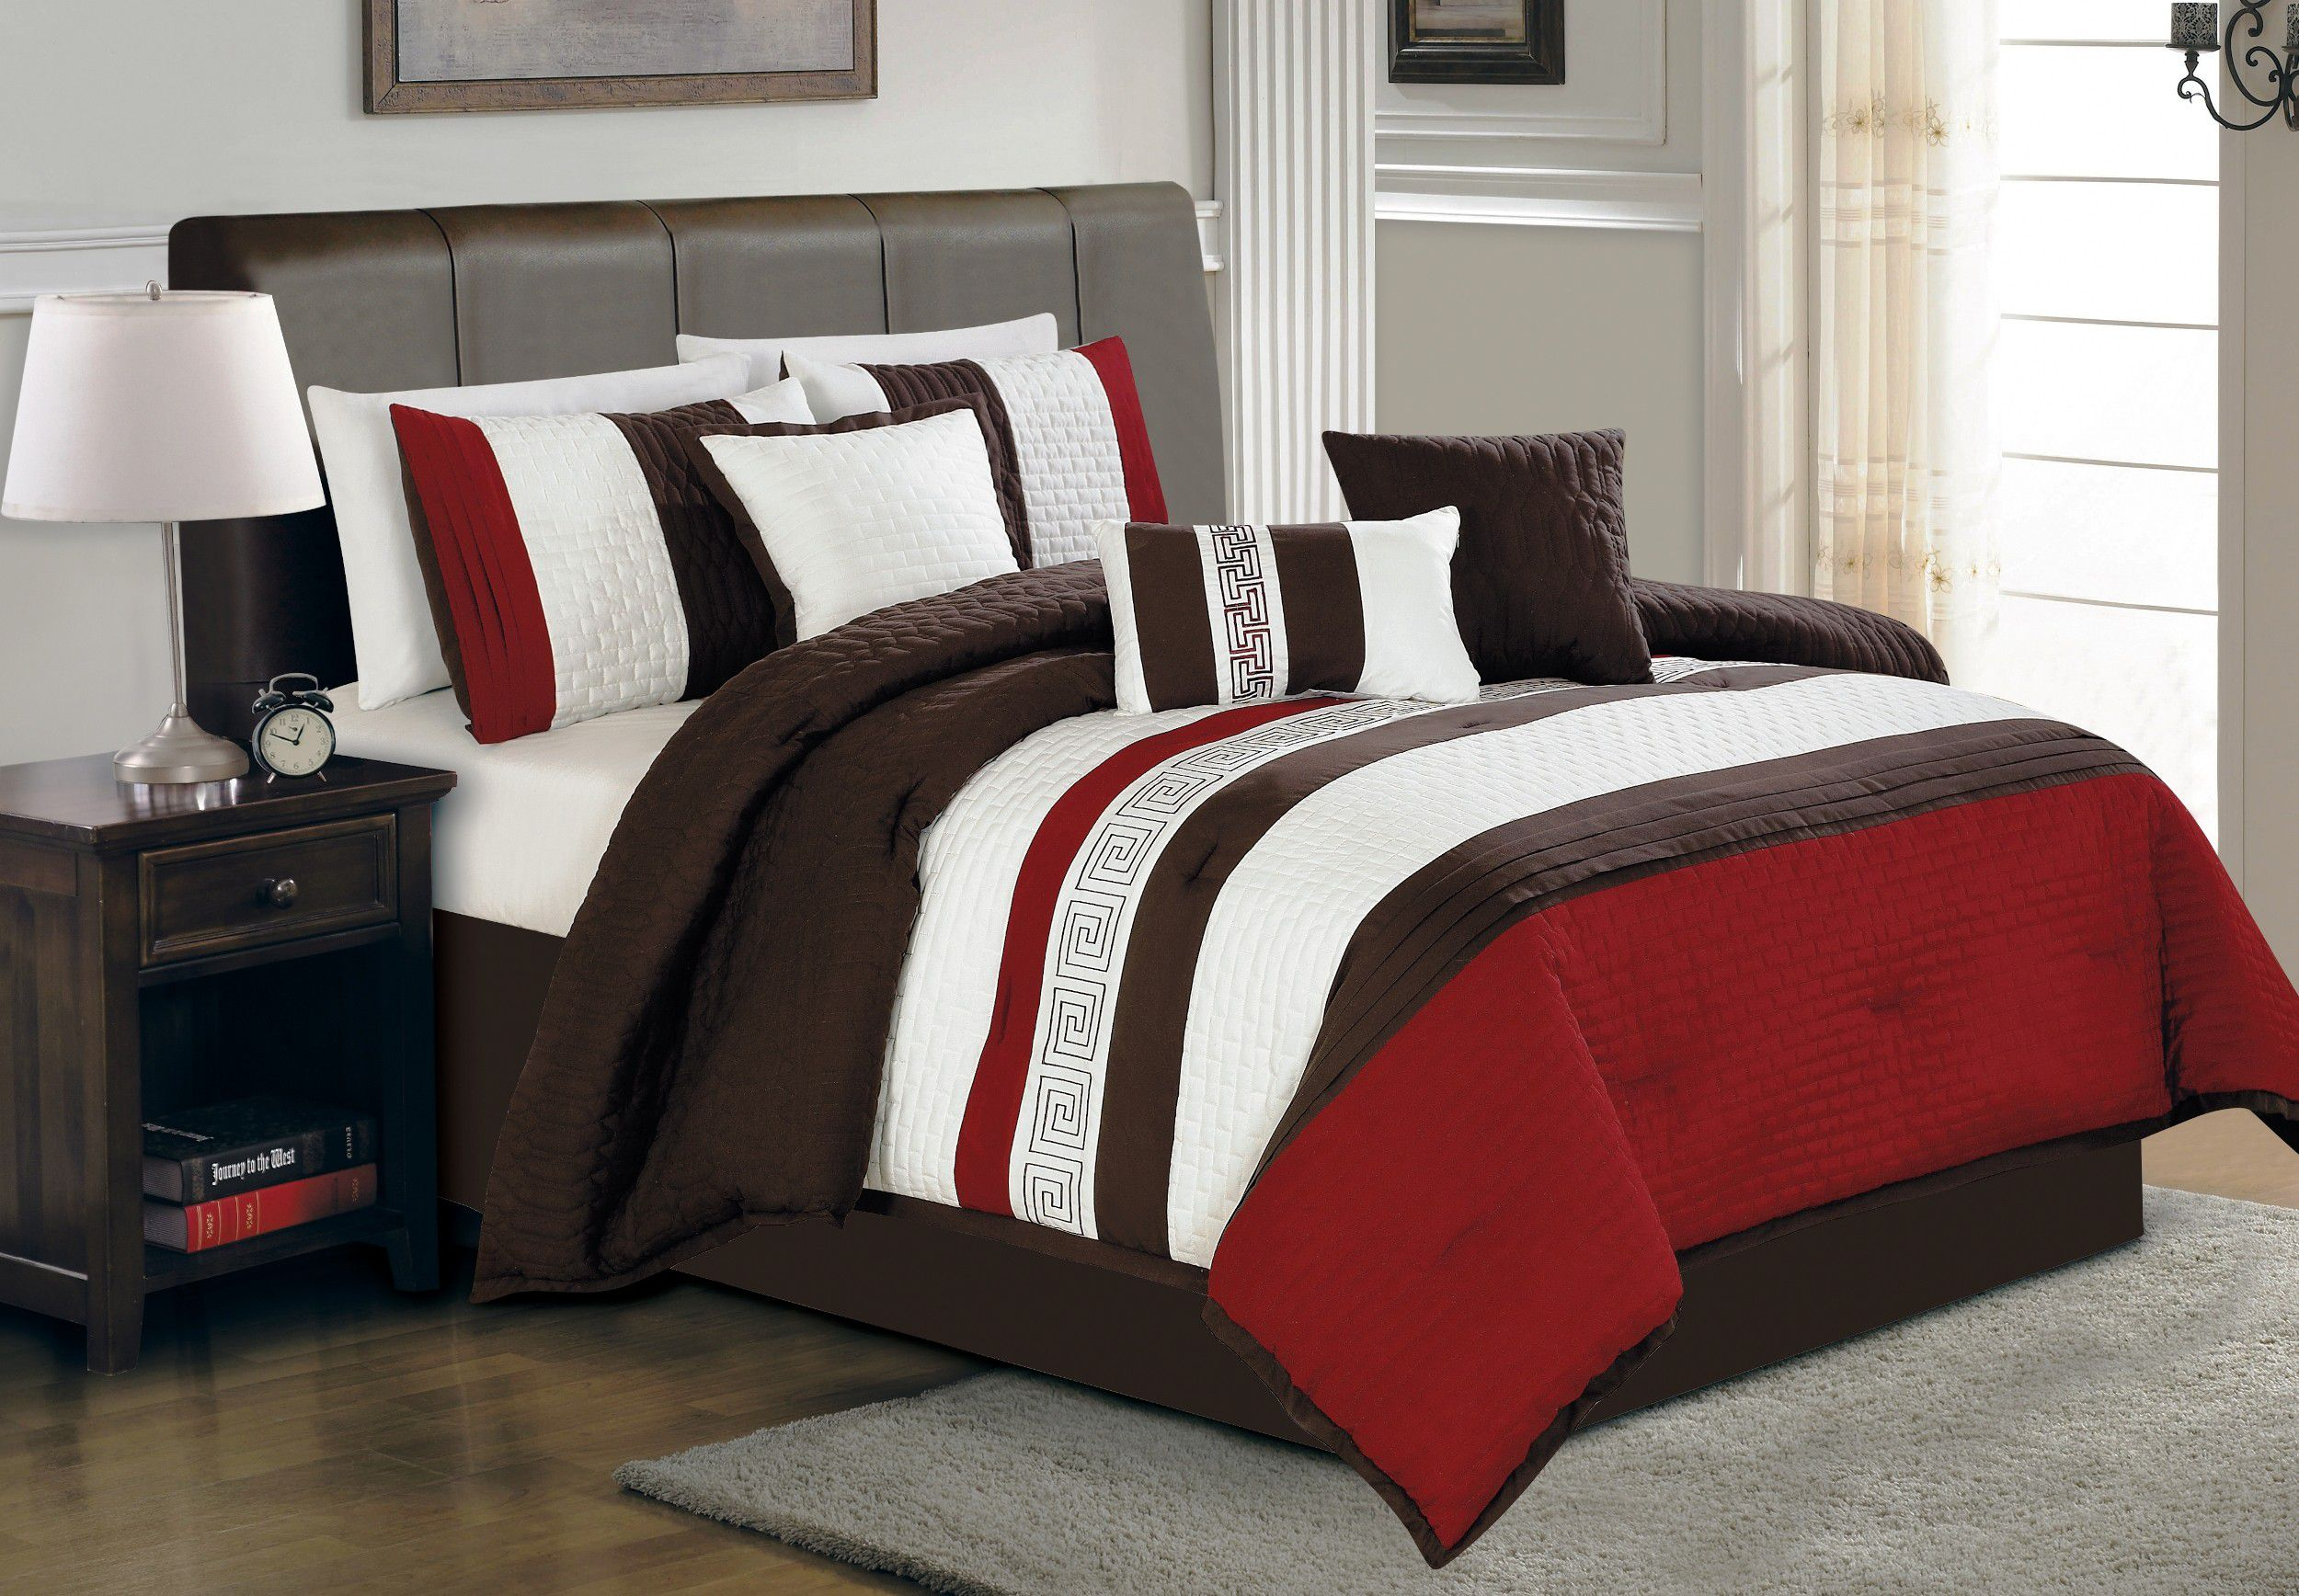 teen boy bedding what should we do